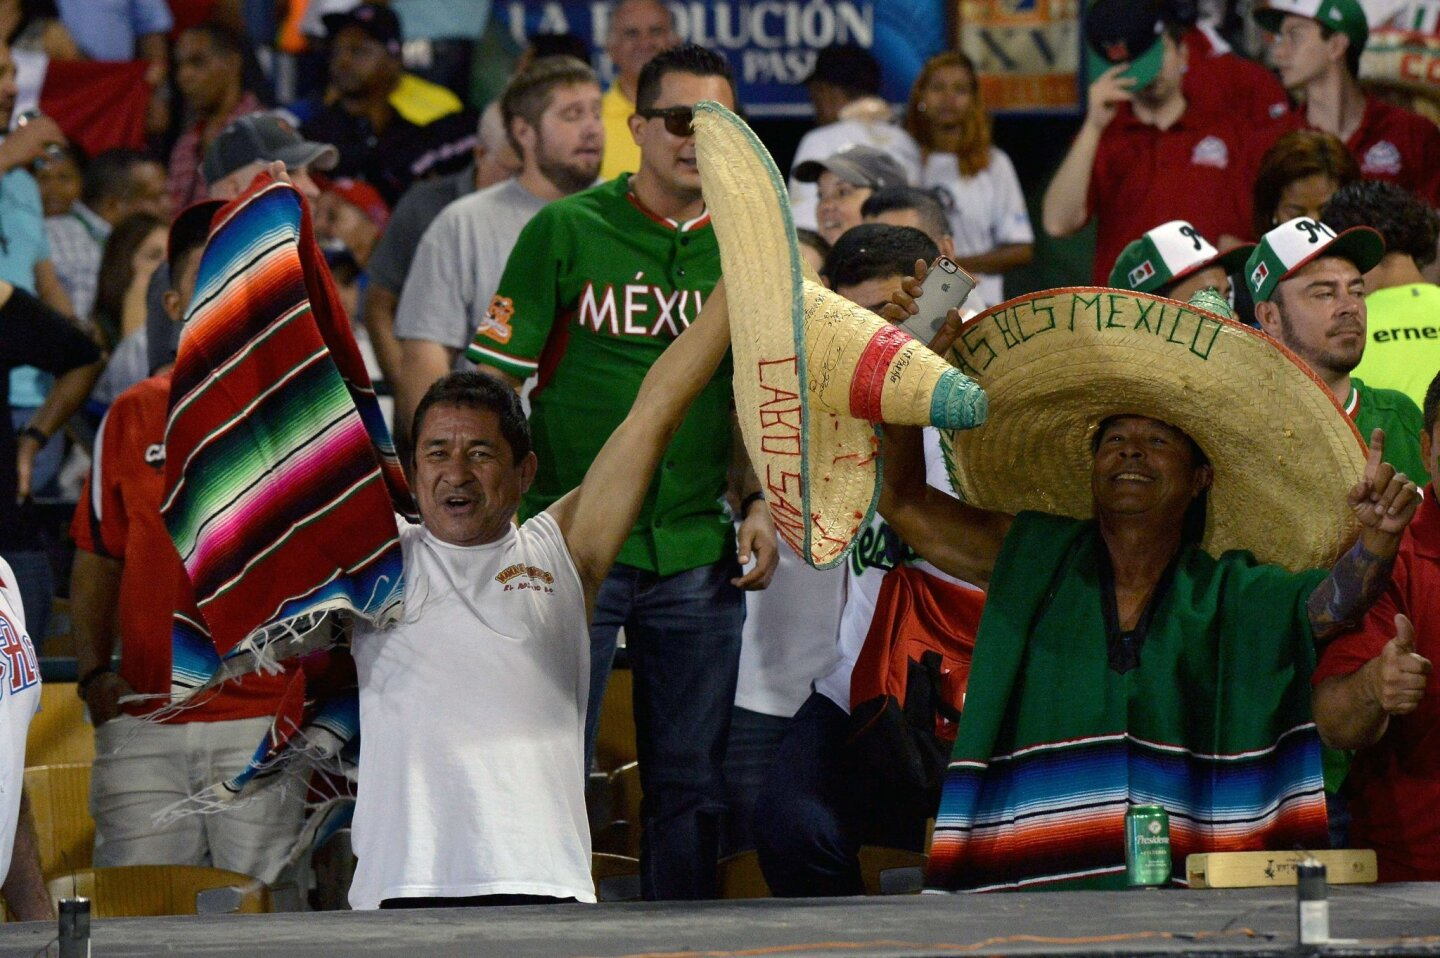 Supporters of Mexico cheer for their team during their 2016 Caribbean baseball series game against Venezuela on February 3, 2016 in Santo Domingo. AFP PHOTO/YAMIL LAGEYAMIL LAGE/AFP/Getty Images ** OUTS - ELSENT, FPG, CM - OUTS * NM, PH, VA if sourced by CT, LA or MoD **